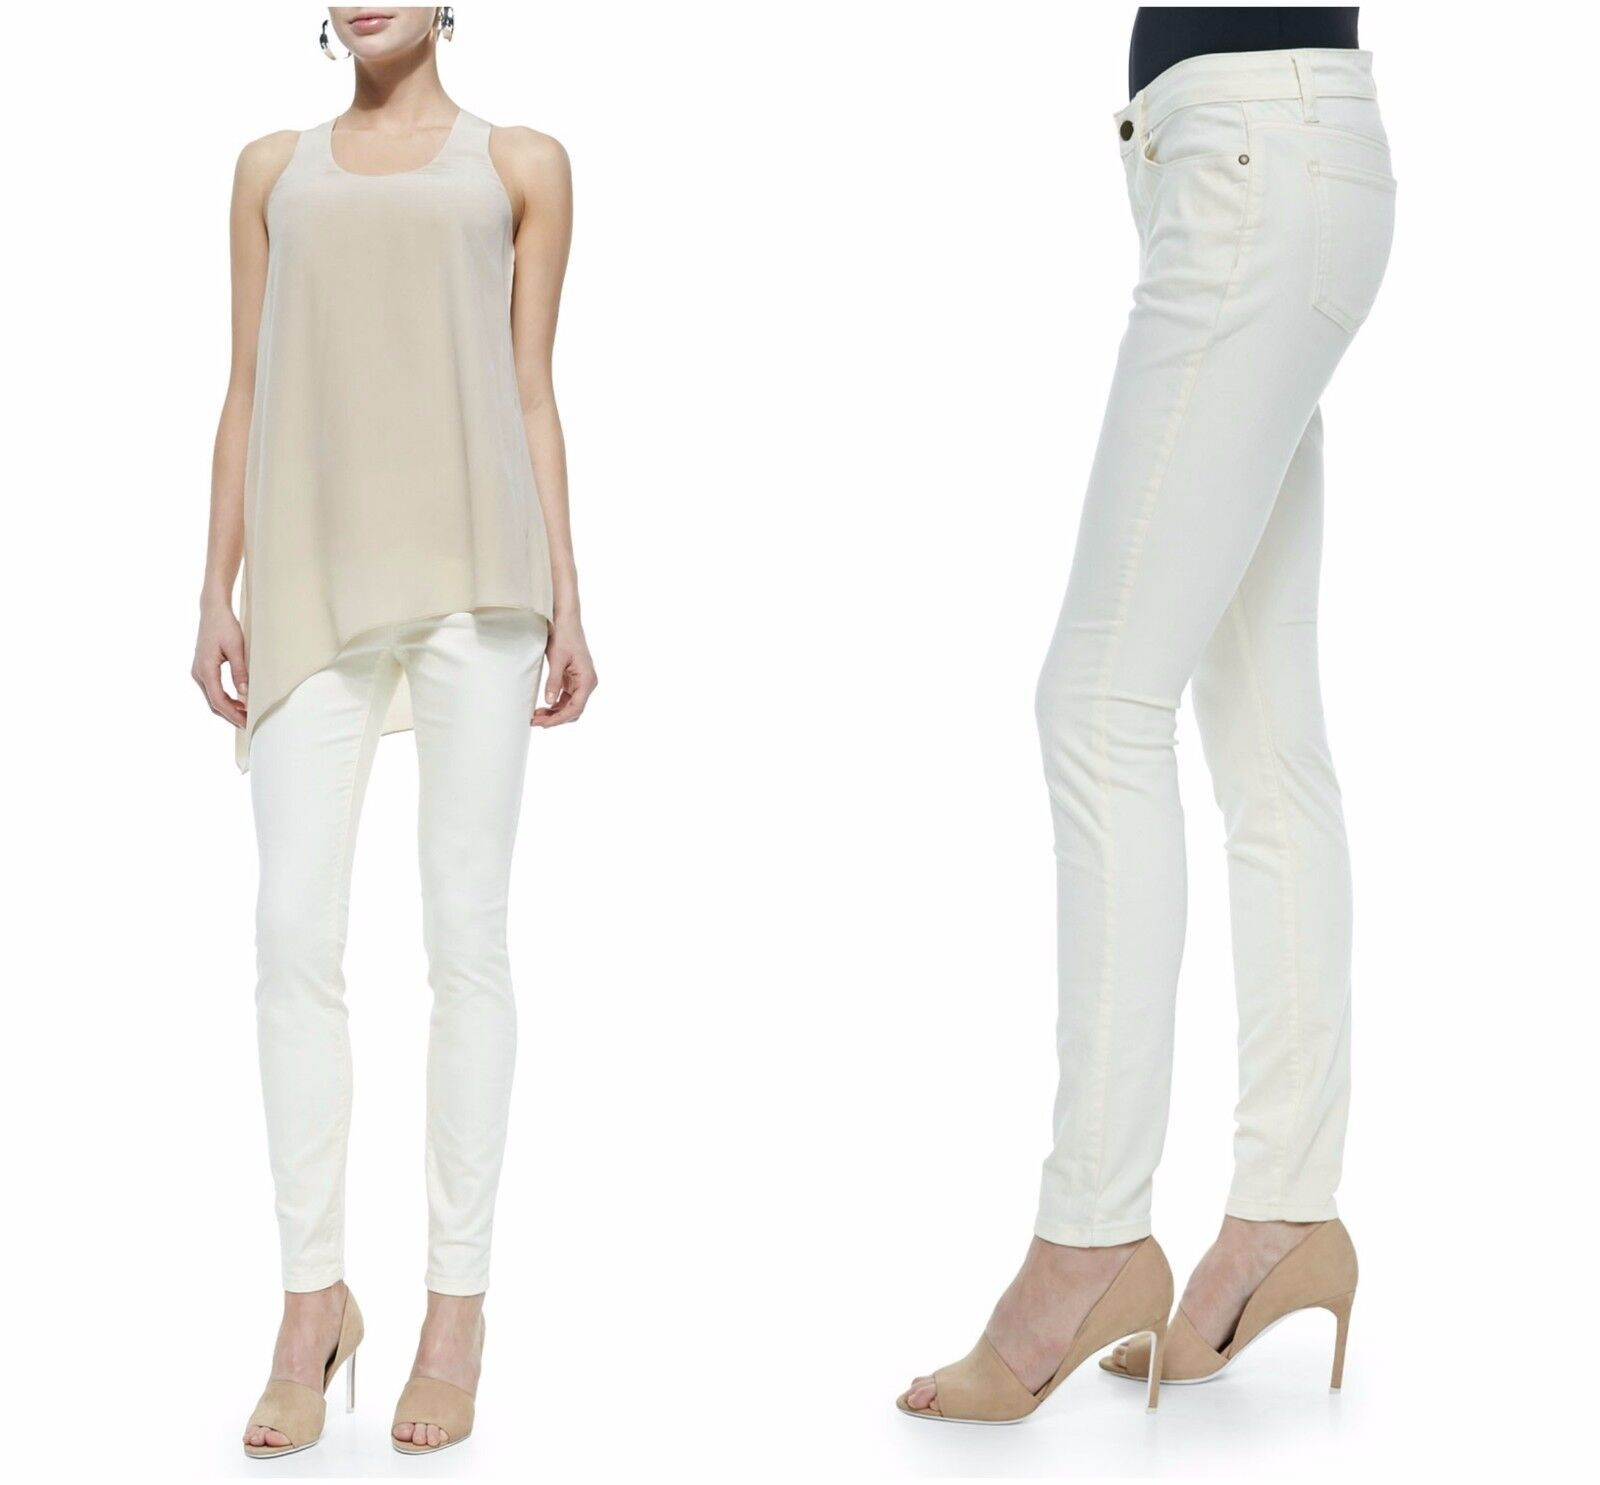 NWT Eileen Fisher Soft White Cotton Stretch Skinny Jeans Pants P 2 4 6 12 14  24